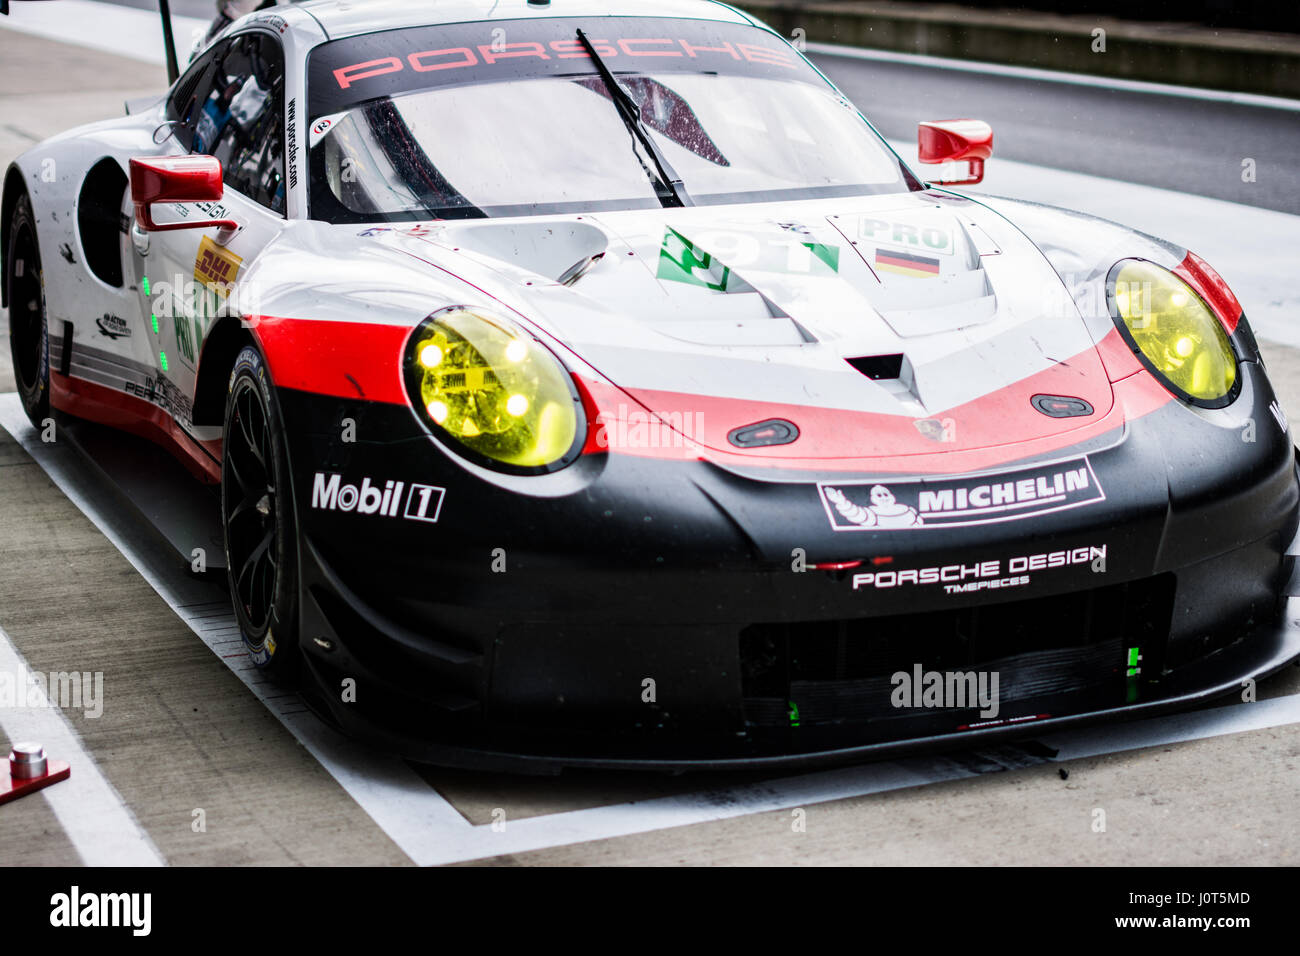 Towcester Northamptonshire Uk 16th Apr 2017 Fia Wec Racing Team Stock Photo Royalty Free